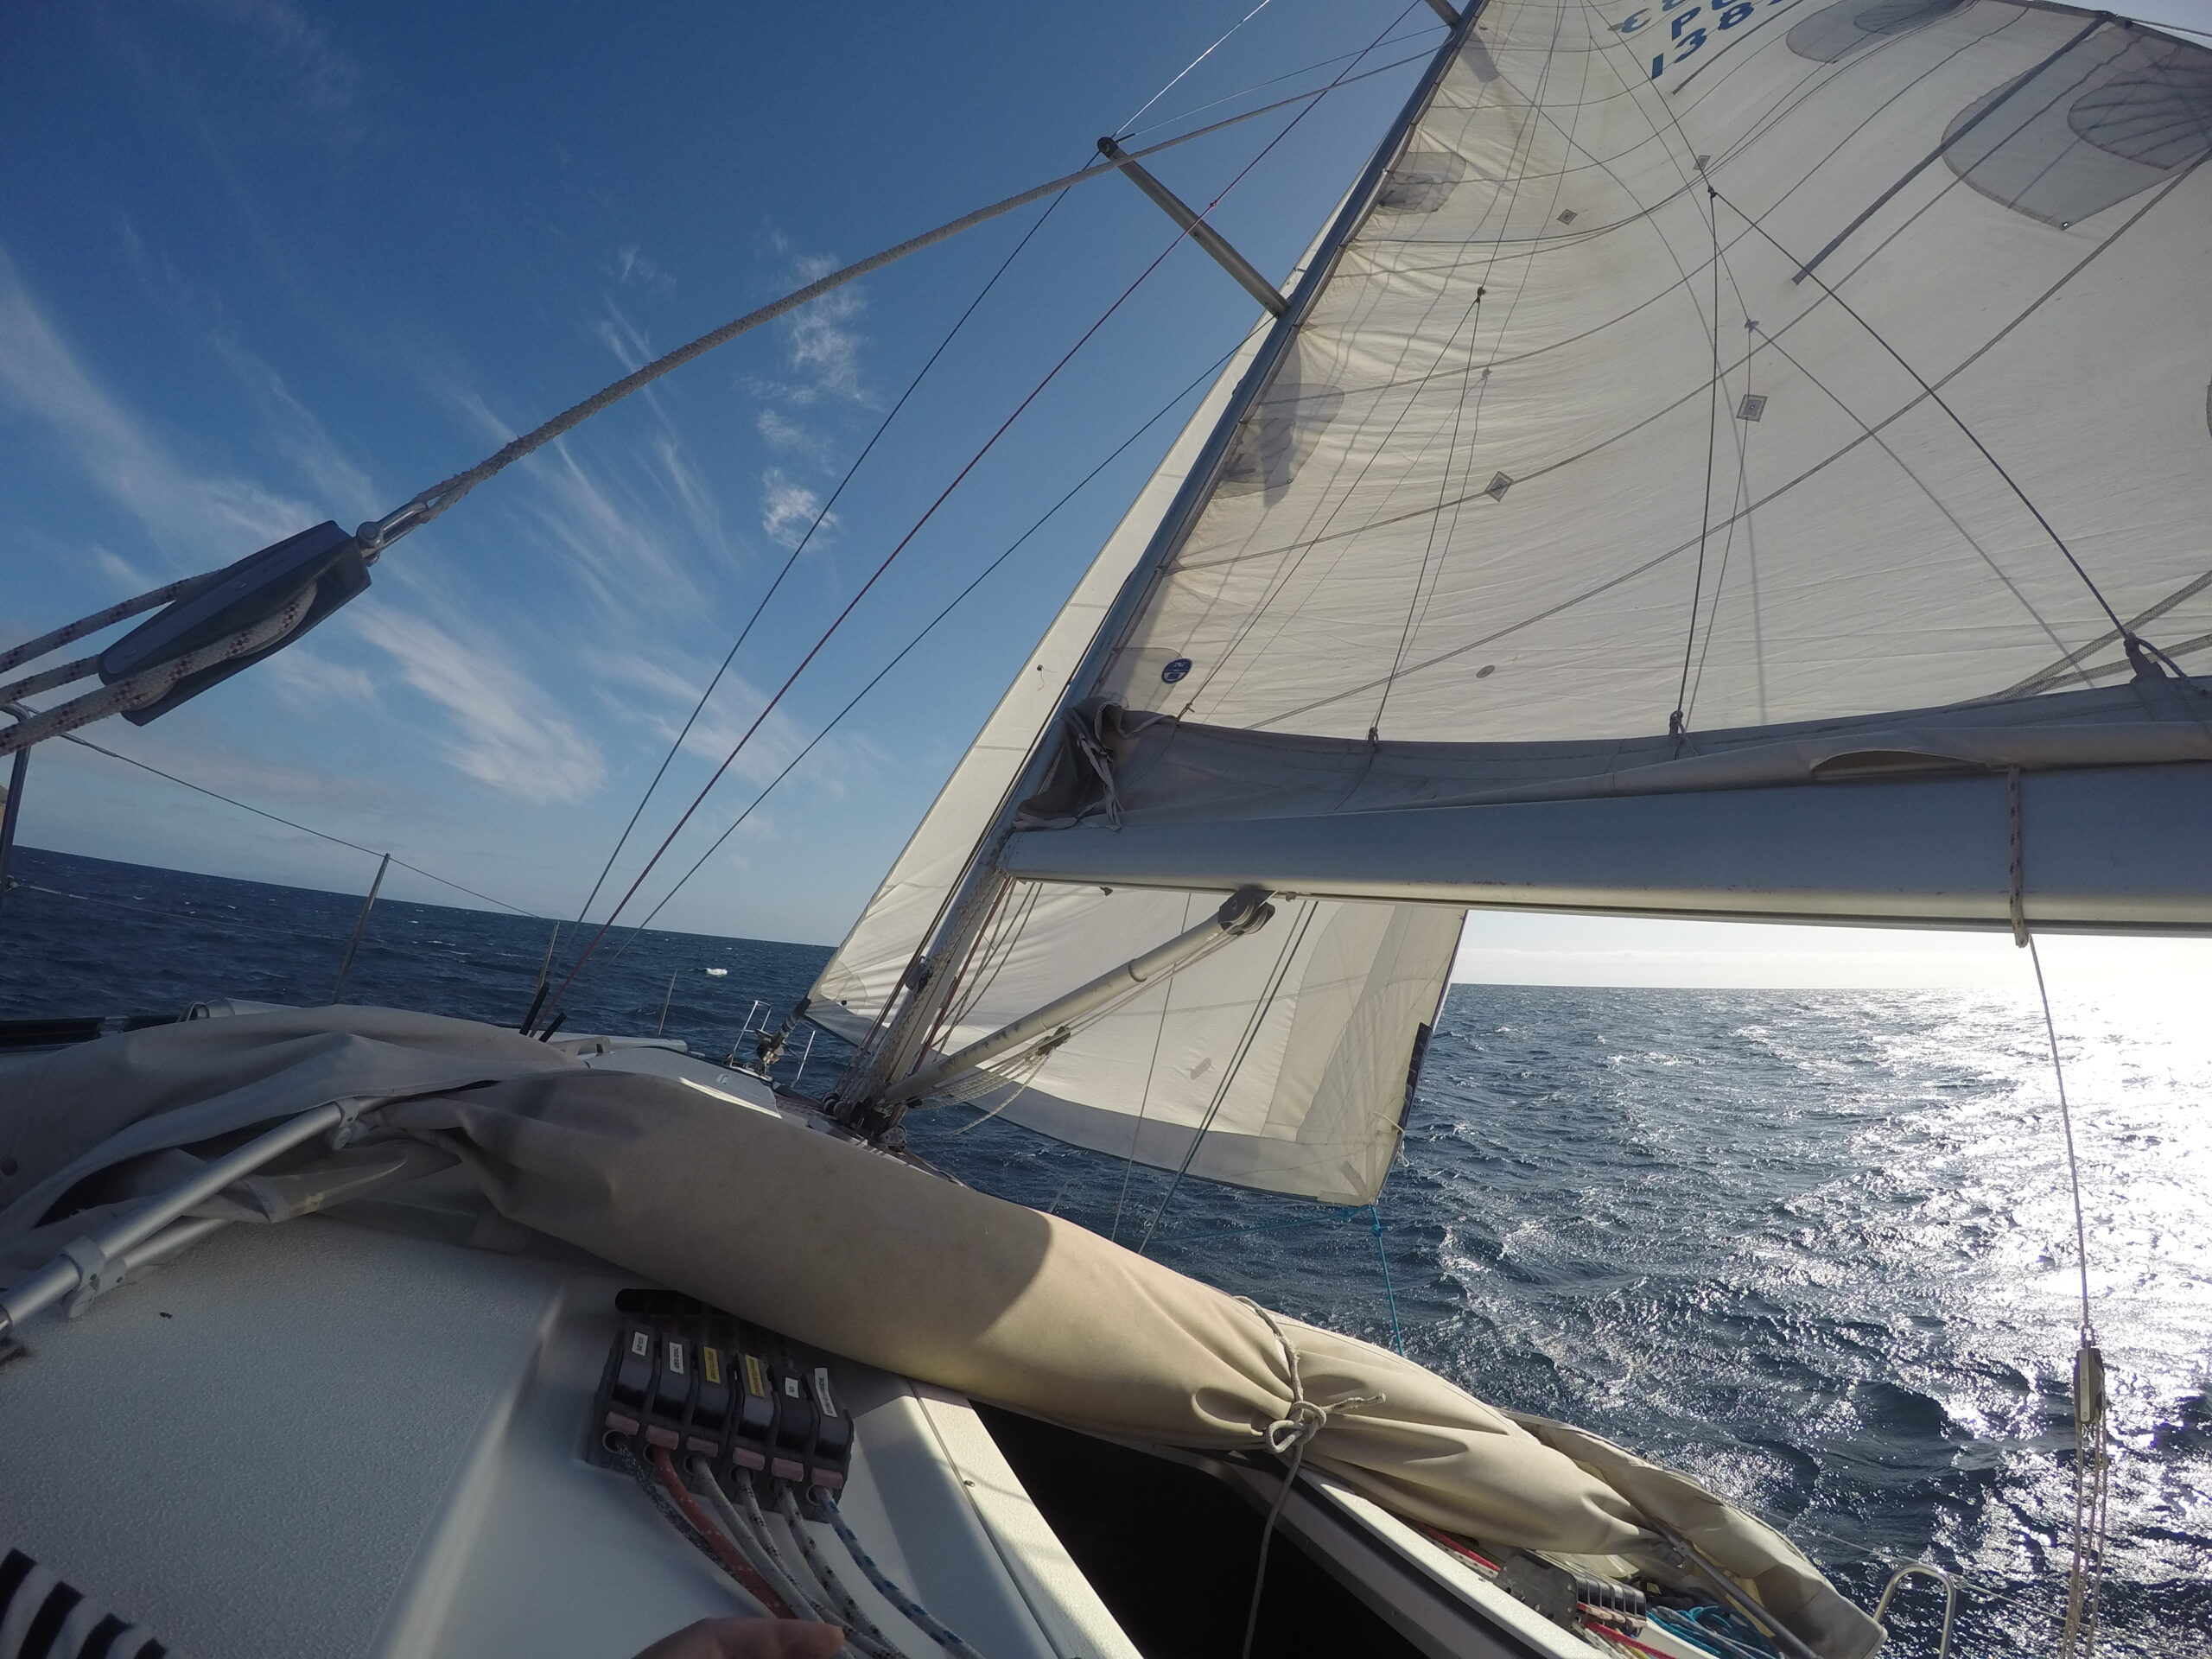 Picture of sail boat sails